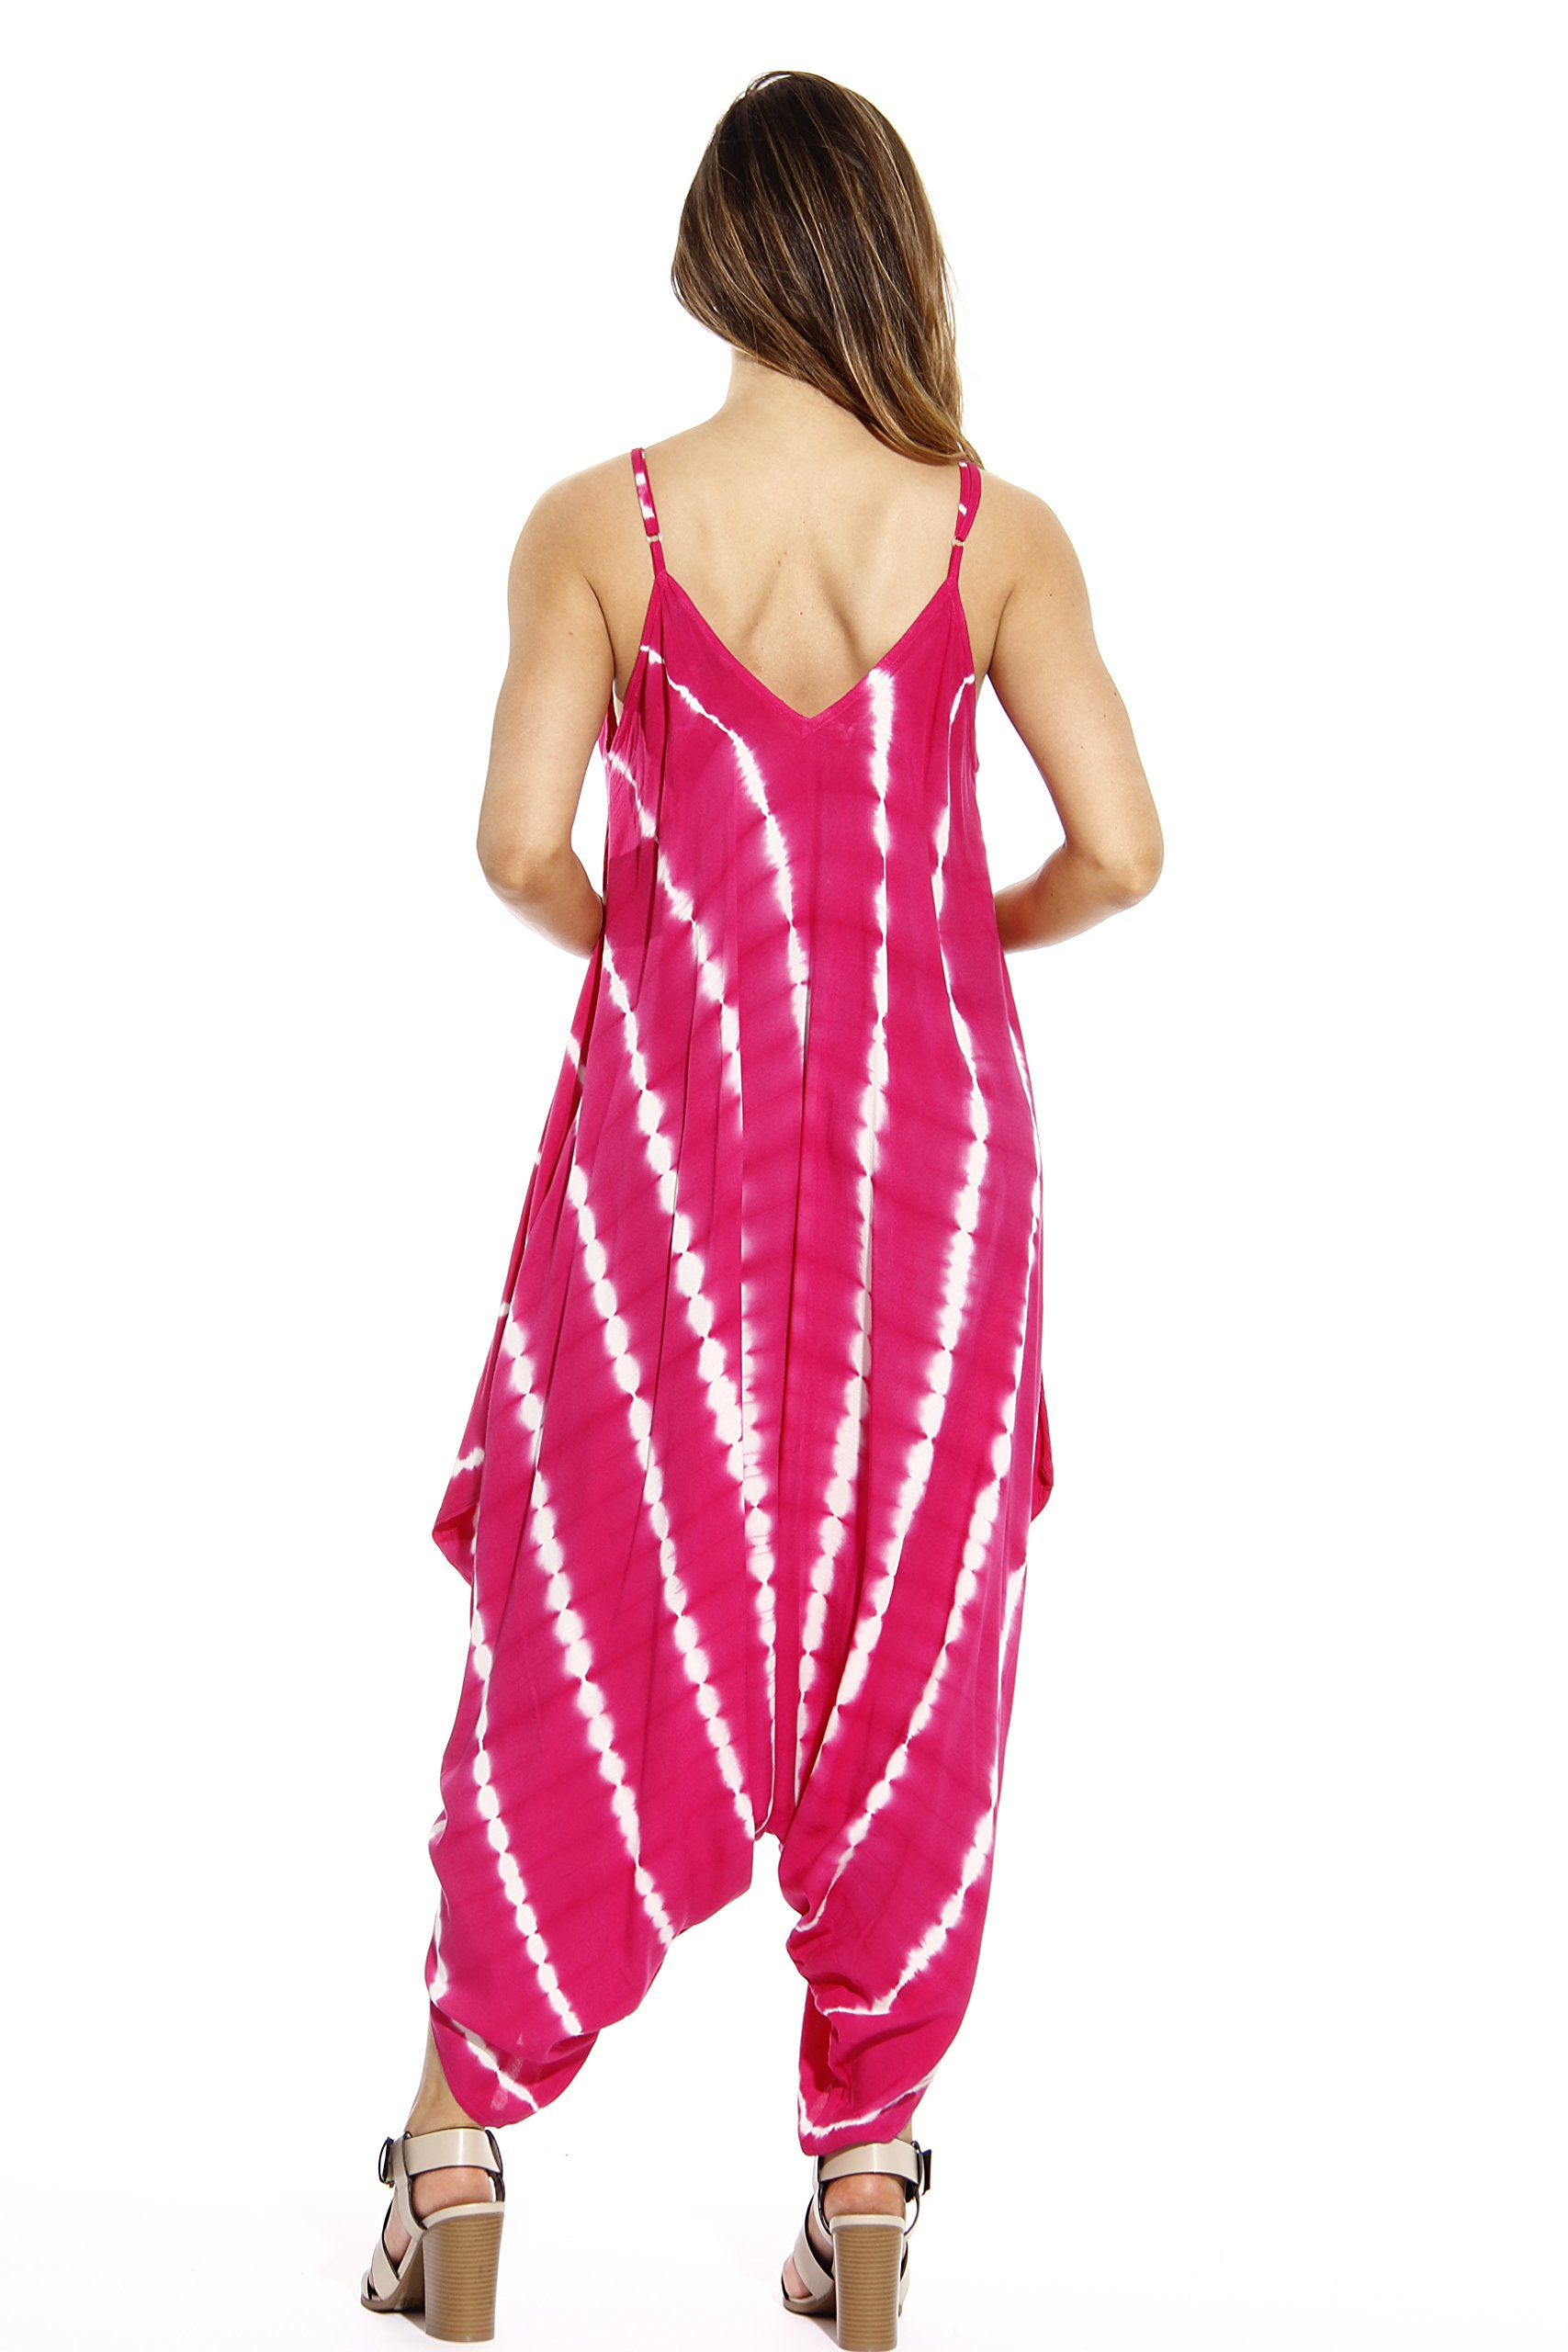 Riviera Sun 21635-FW-1X Jumpsuit/Jumpsuits for Women by Riviera Sun (Image #3)